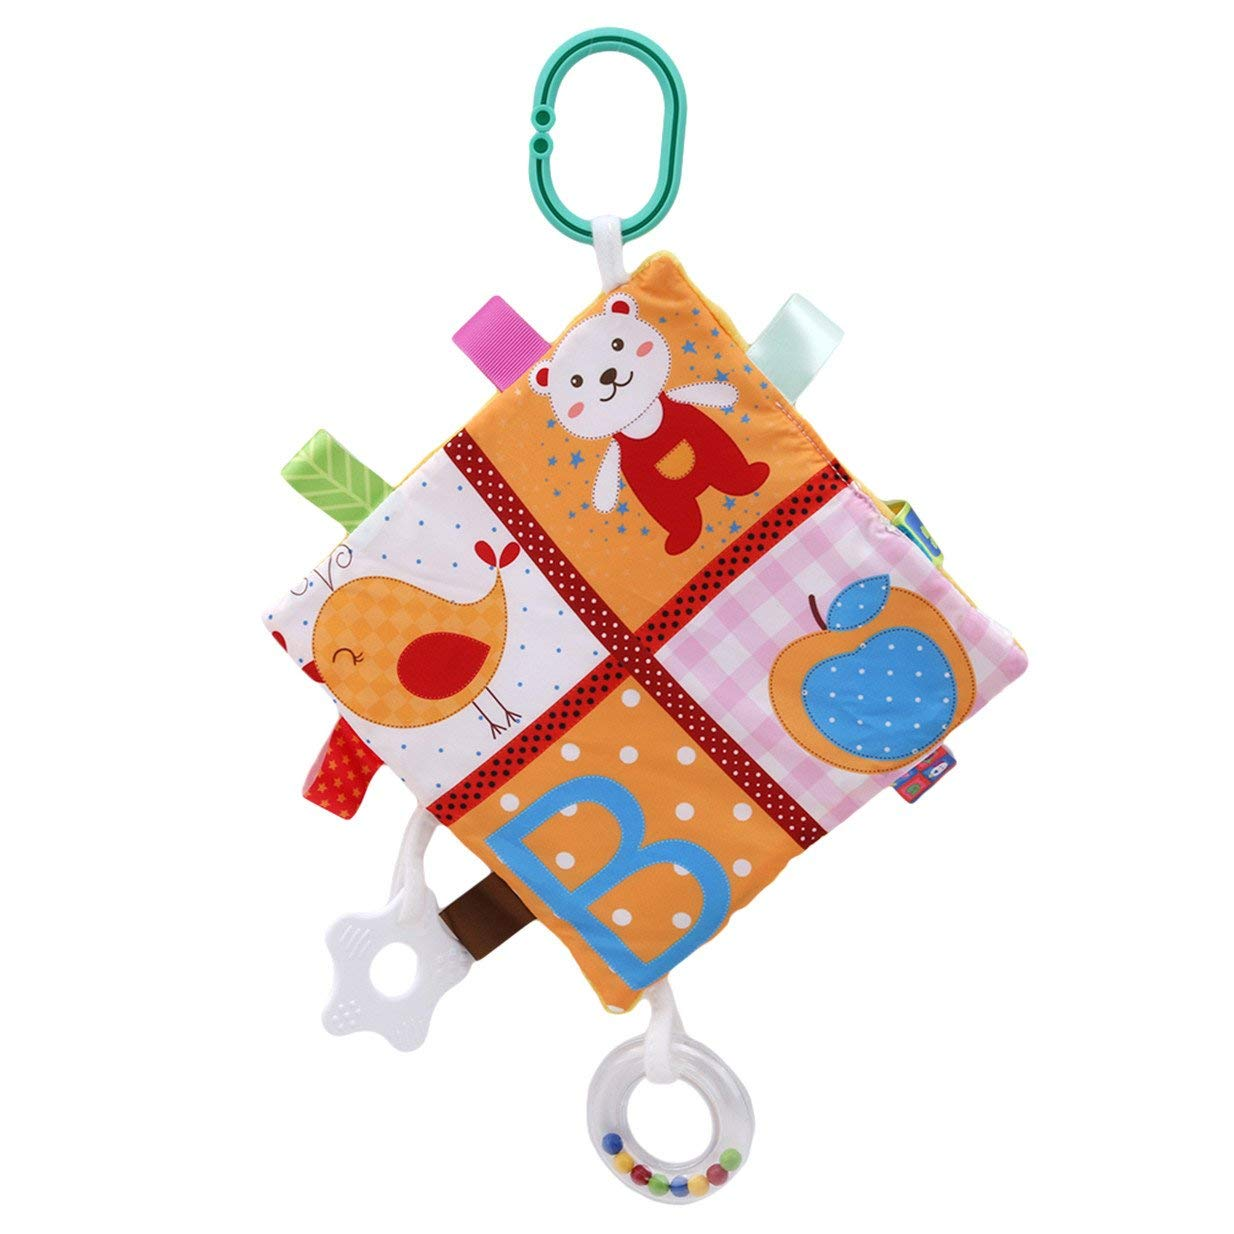 Xeminor Premium Baby Tag Taggy Blanket Comforter Plush Hanging Towel with Teether and Rattle, for Baby Girls Boys Beel with Teether Plush Toys for Baby Girls Boys Style 2